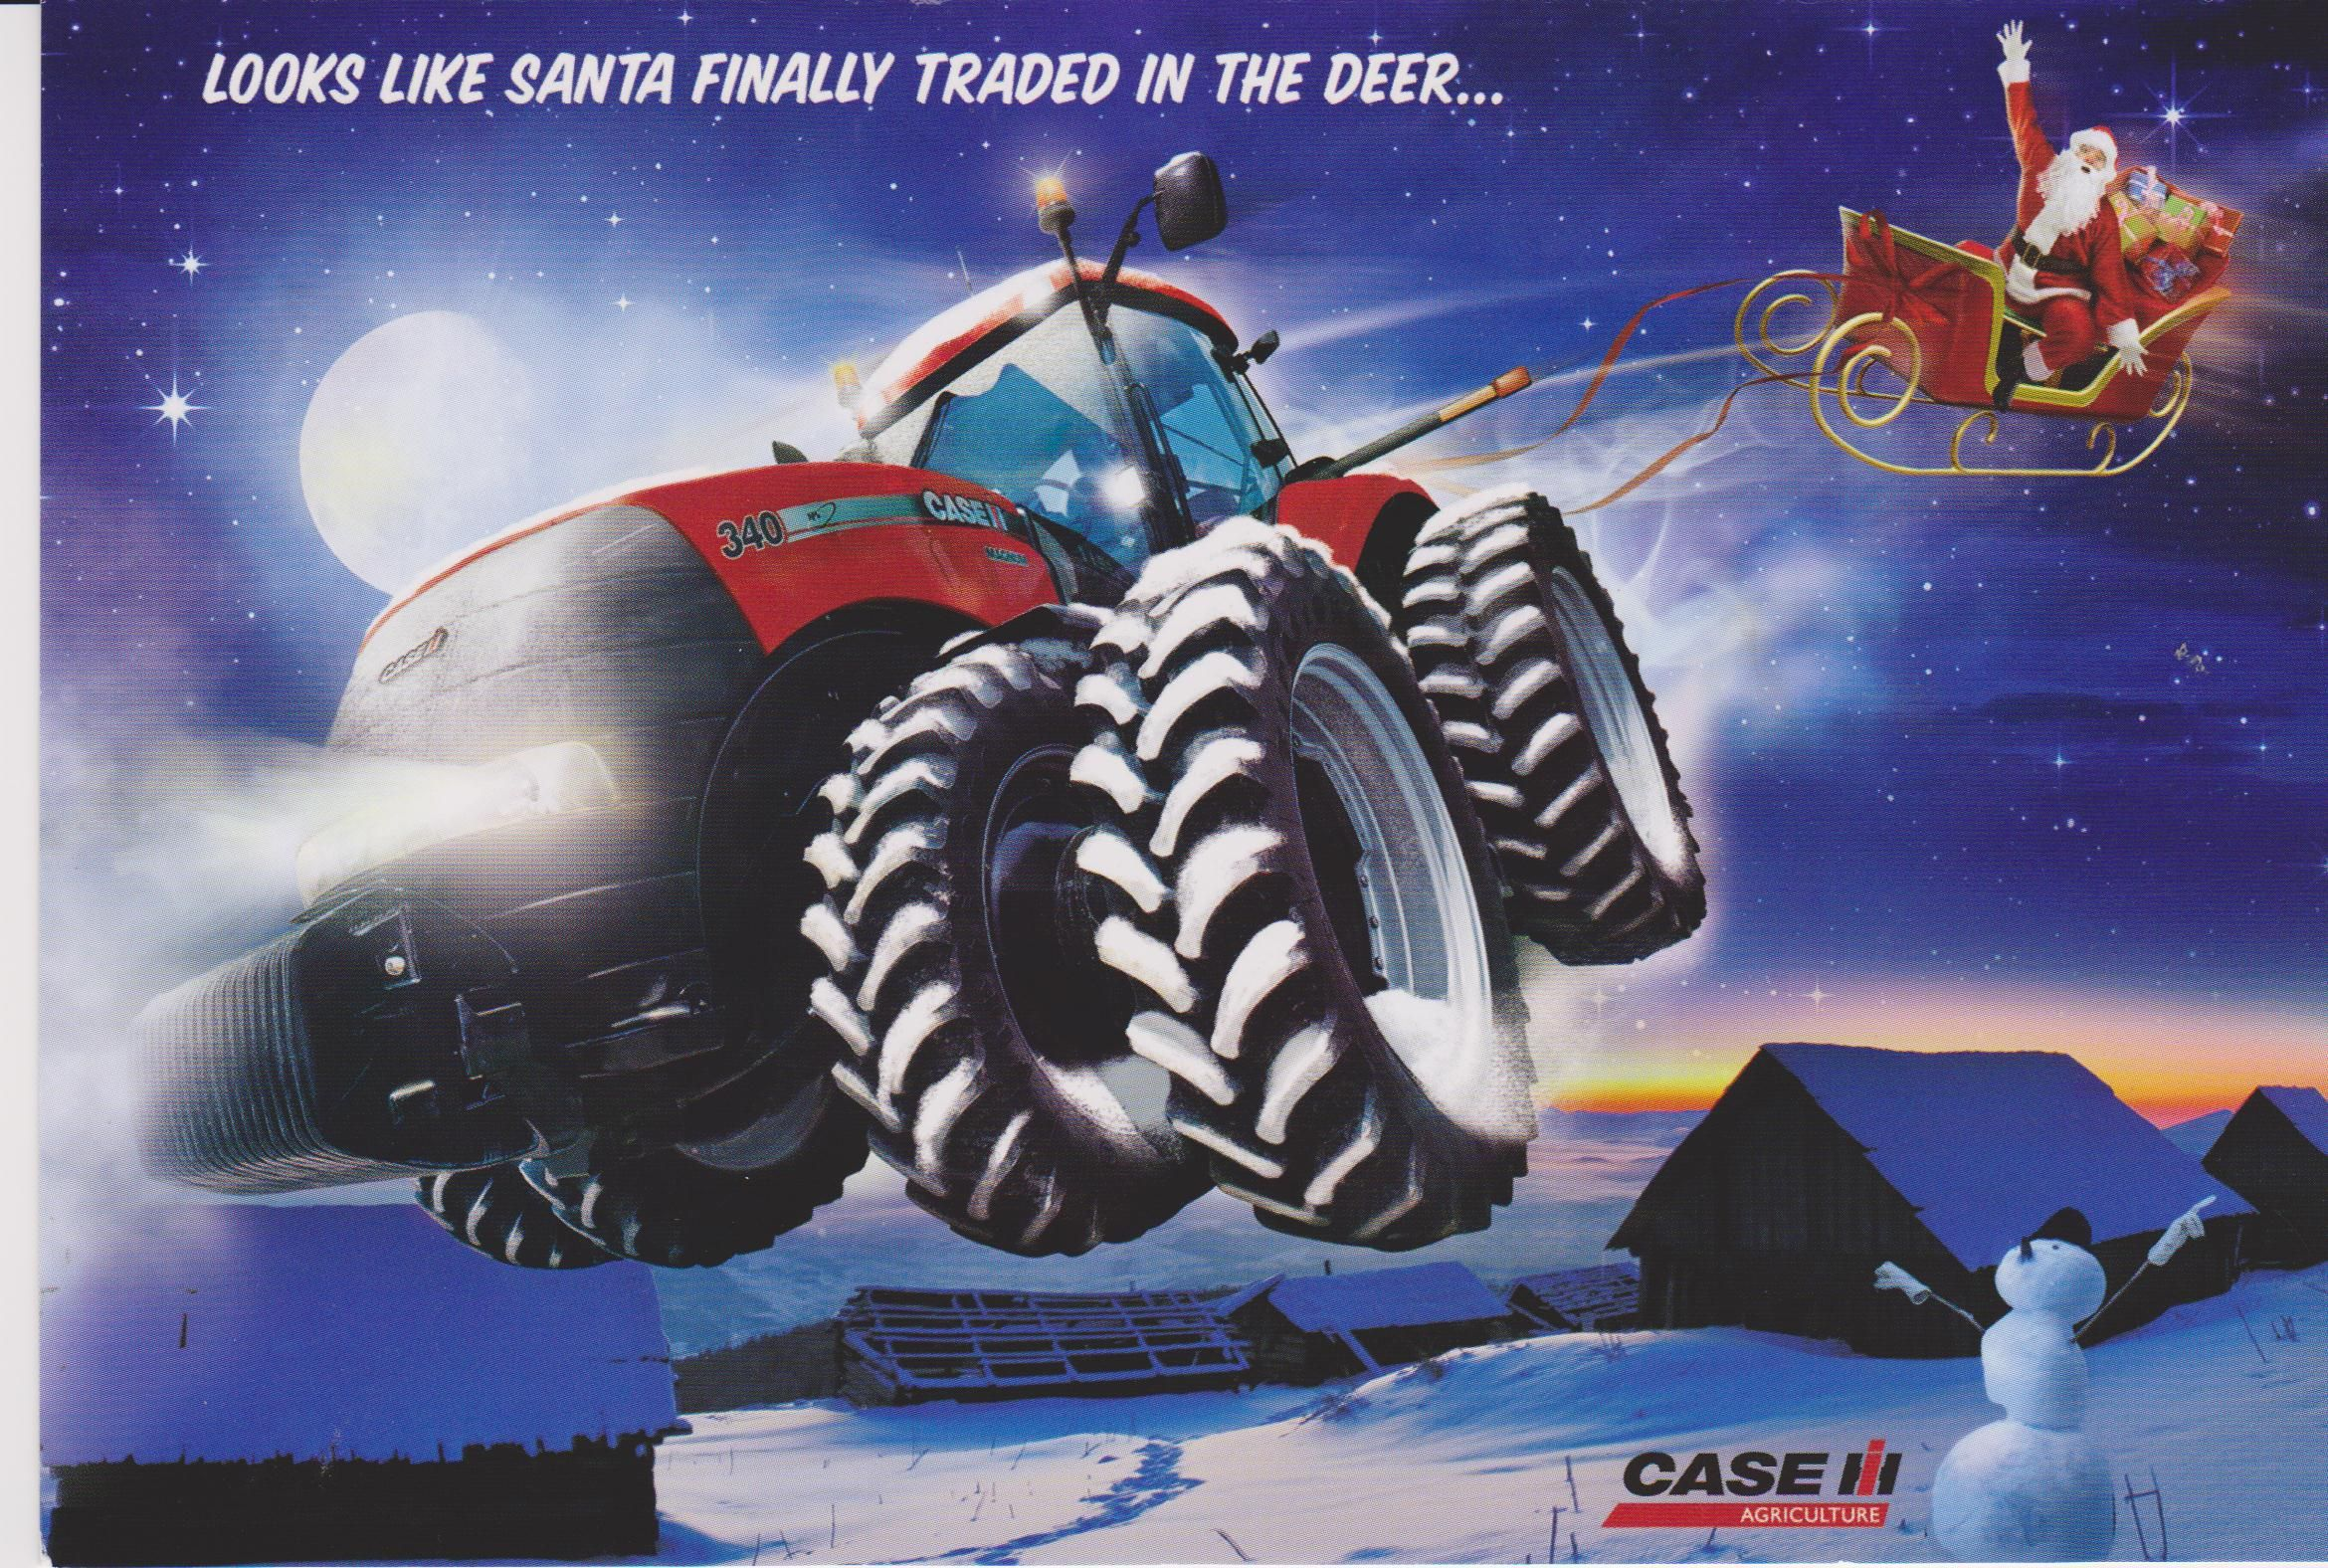 Case IH Santa Has Finally Traded In The Deer Poster